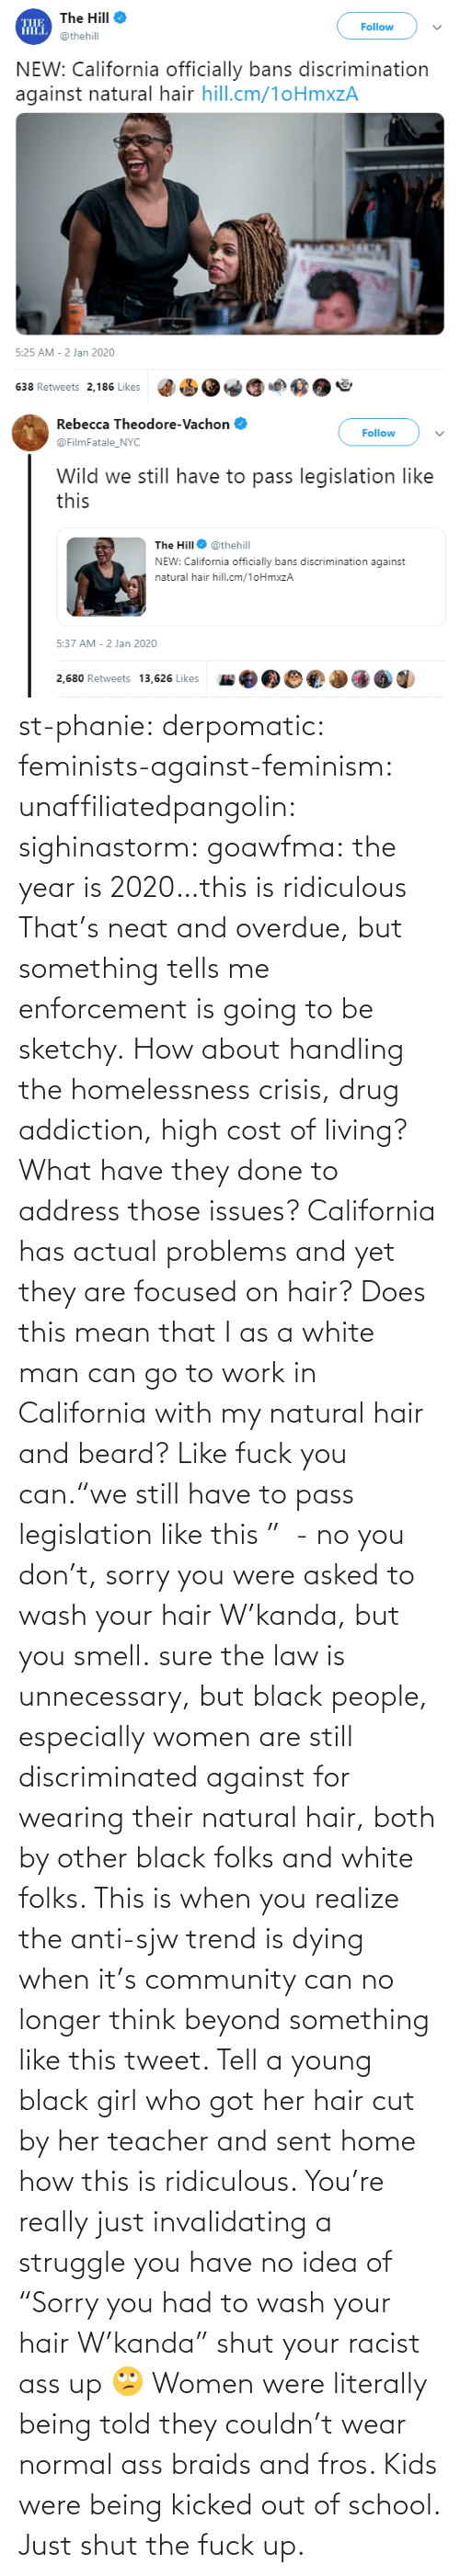 "idea: st-phanie:  derpomatic:  feminists-against-feminism:  unaffiliatedpangolin:  sighinastorm:   goawfma: the year is 2020…this is ridiculous That's neat and overdue, but something tells me enforcement is going to be sketchy.    How about handling the homelessness crisis, drug addiction, high cost of living? What have they done to address those issues? California has actual problems and yet they are focused on hair?  Does this mean that I as a white man can go to work in California with my natural hair and beard?  Like fuck you can.""we still have to pass legislation like this ""  - no you don't, sorry you were asked to wash your hair W'kanda, but you smell.    sure the law is unnecessary, but black people, especially women are still discriminated against for wearing their natural hair, both by other black folks and white folks. This is when you realize the anti-sjw trend is dying when it's community can no longer think beyond something like this tweet. Tell a young black girl who got her hair cut by her teacher and sent home how this is ridiculous. You're really just invalidating a struggle you have no idea of   ""Sorry you had to wash your hair W'kanda"" shut your racist ass up 🙄 Women were literally being told they couldn't wear normal ass braids and fros. Kids were being kicked out of school. Just shut the fuck up."